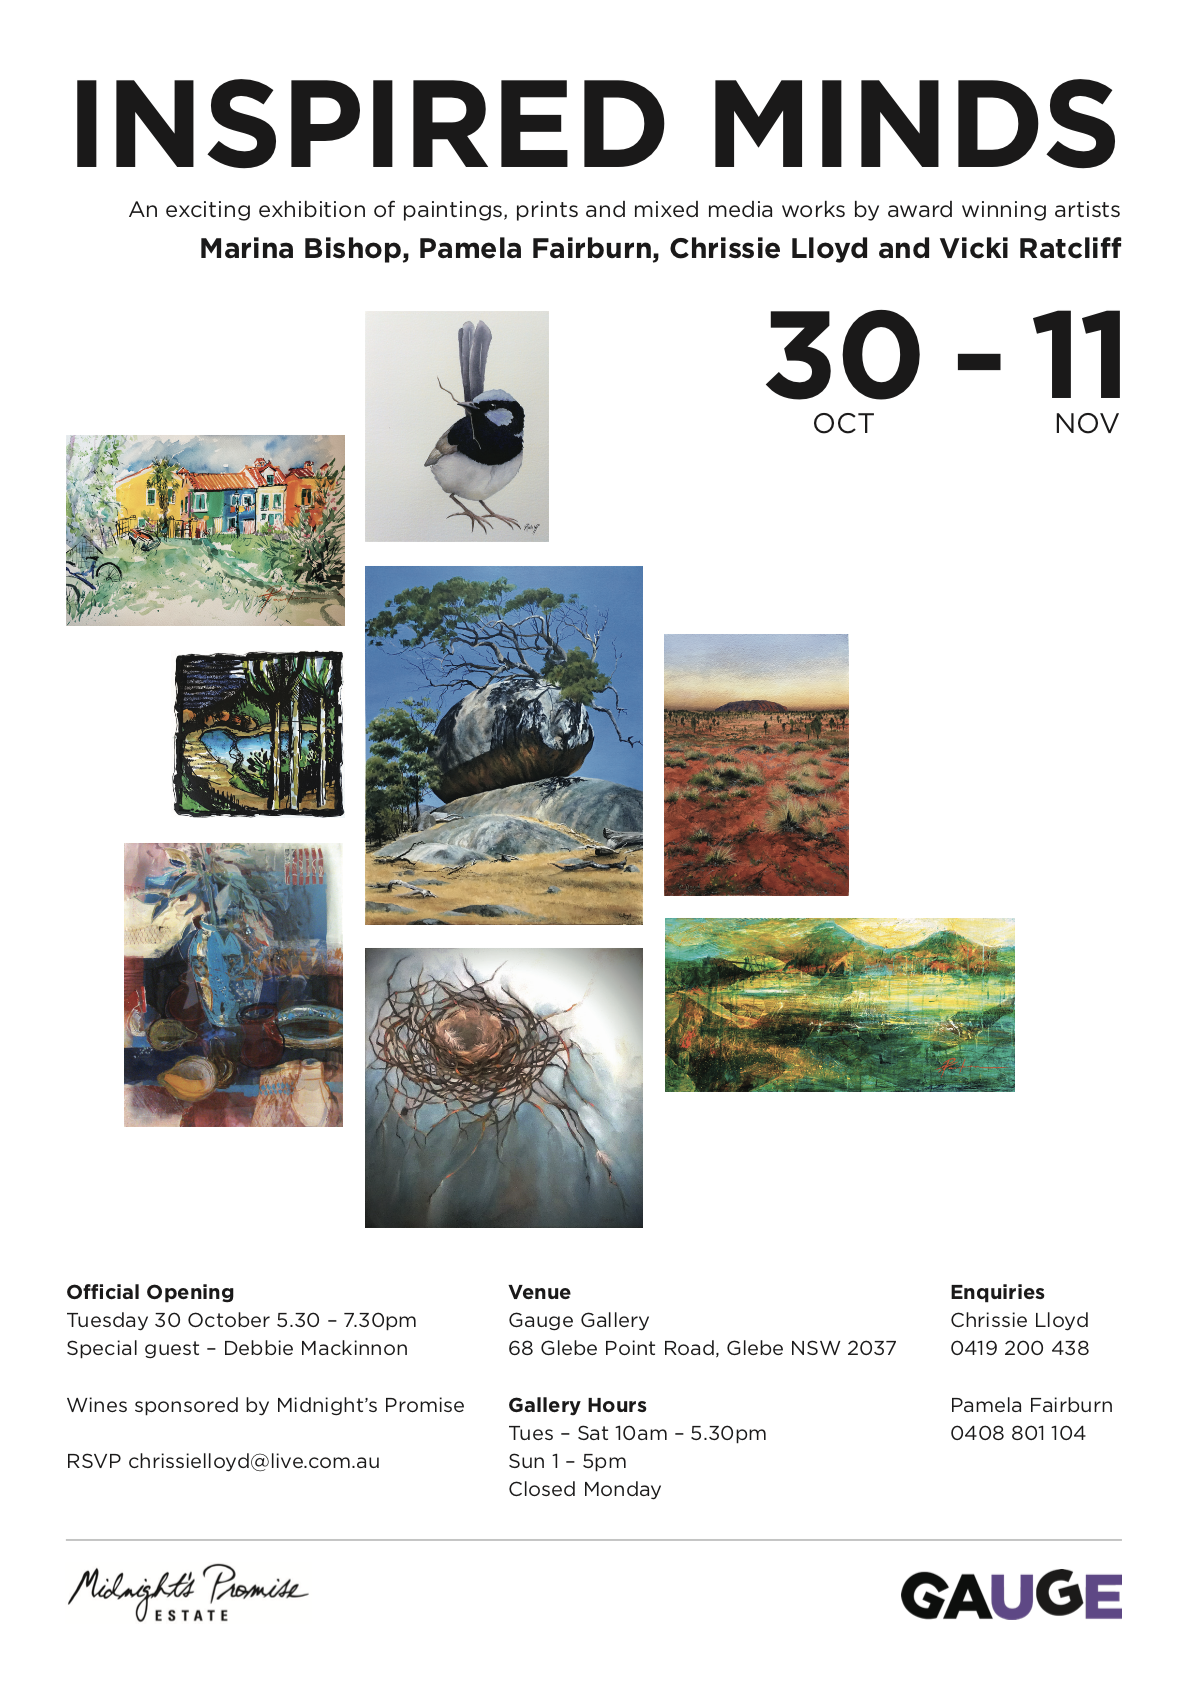 Inspired Minds - 30 October - 11 November 2018Group exhibition - Chrissie Lloyd, Marina Bishop, Pamela Fairburn and Vicki Ratcliff